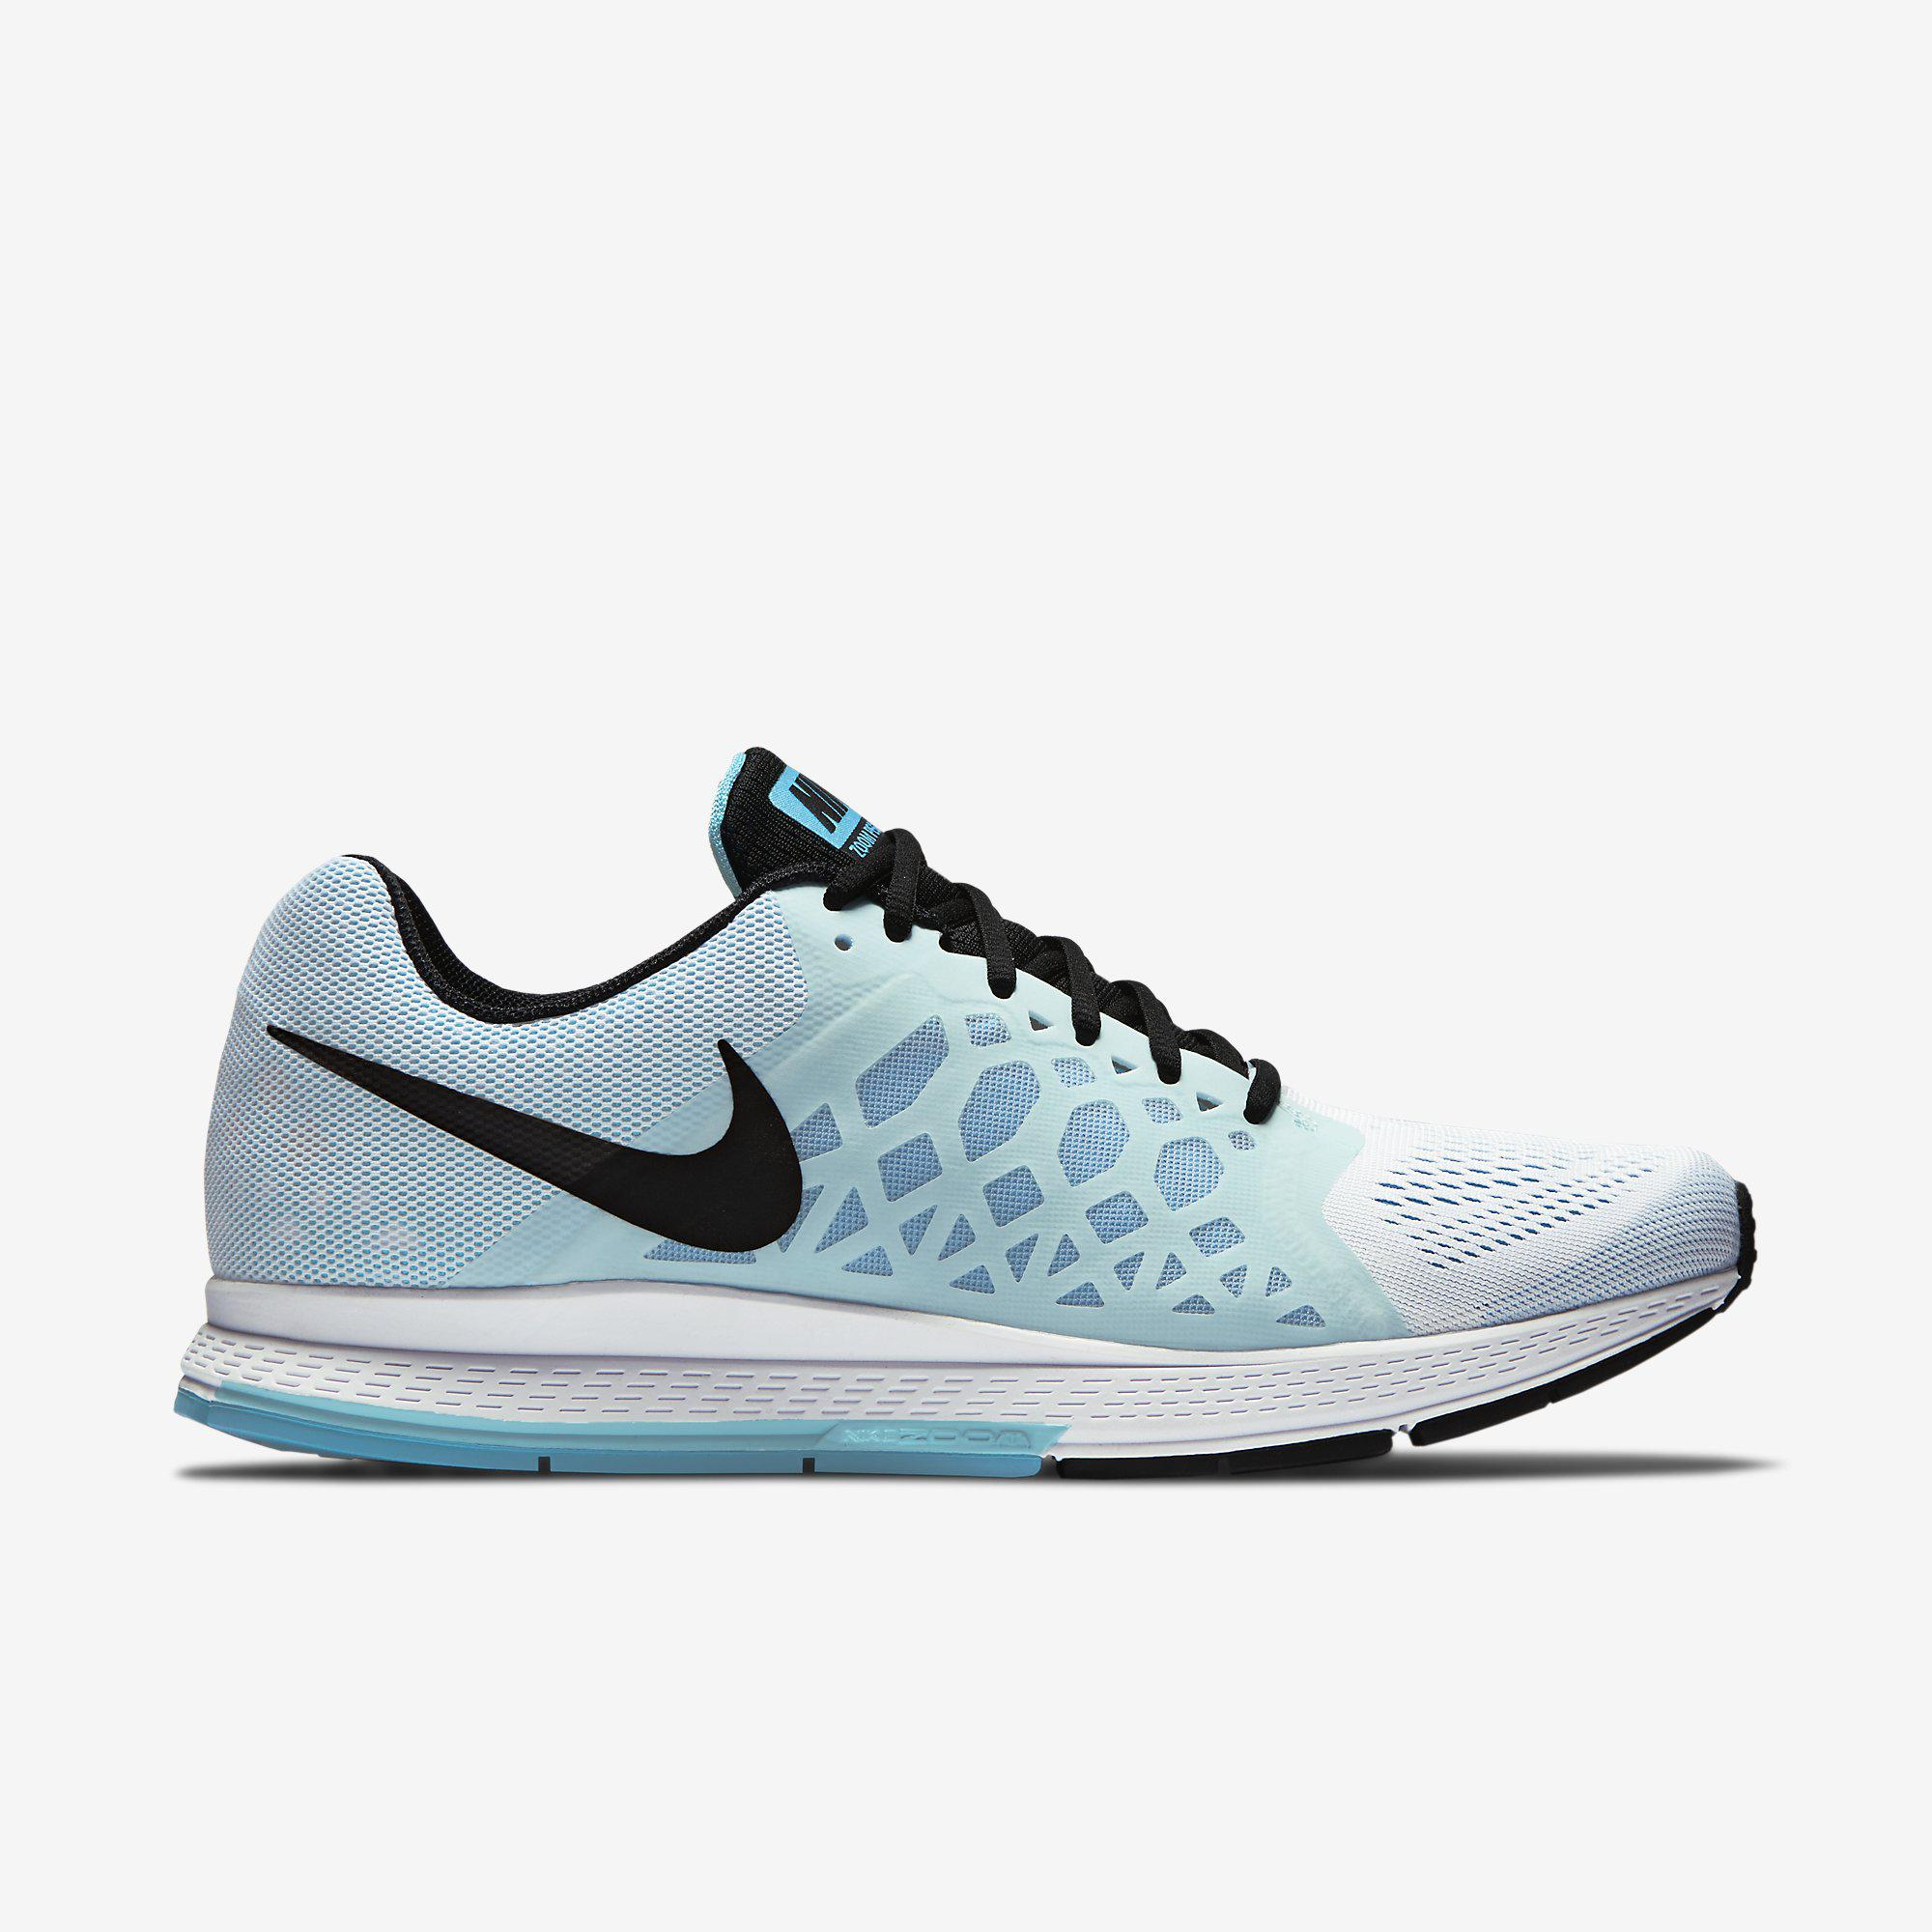 sneakers for cheap 14fe2 d13e6 Nike Mens Air Zoom Pegasus+31 Running Shoes - White Blue - Tennisnuts.com